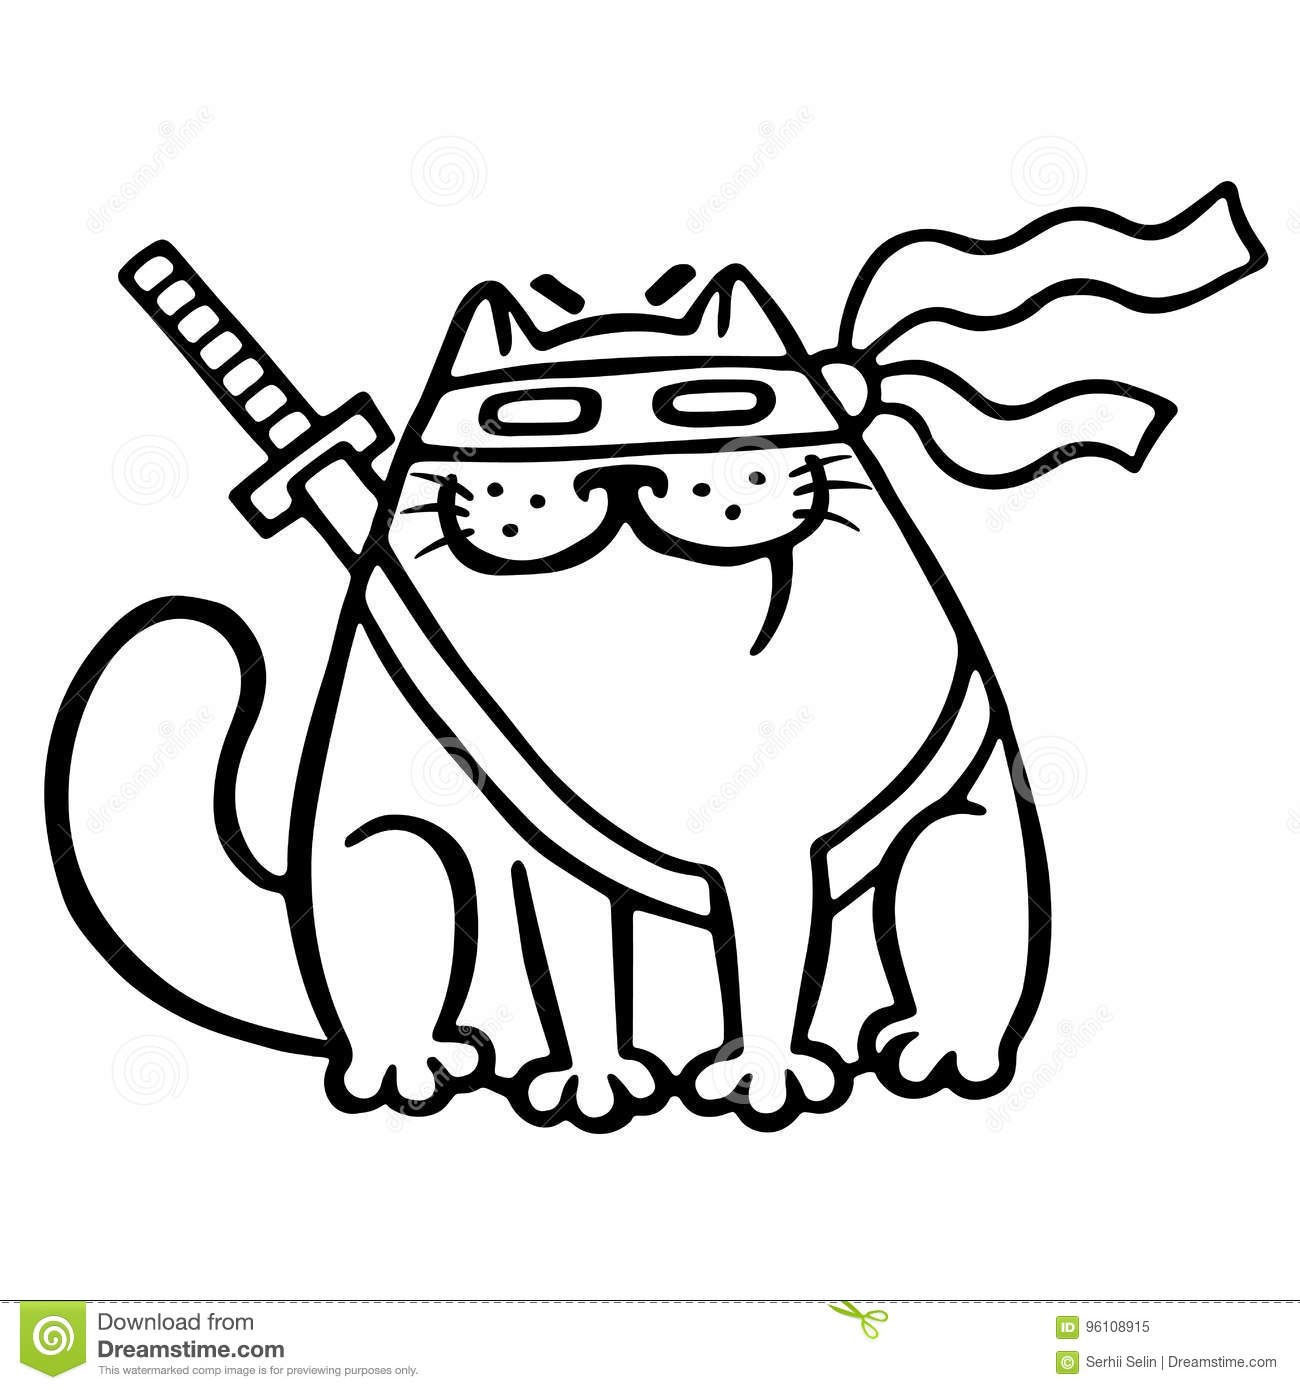 ninja cat coloring pages - photo#12